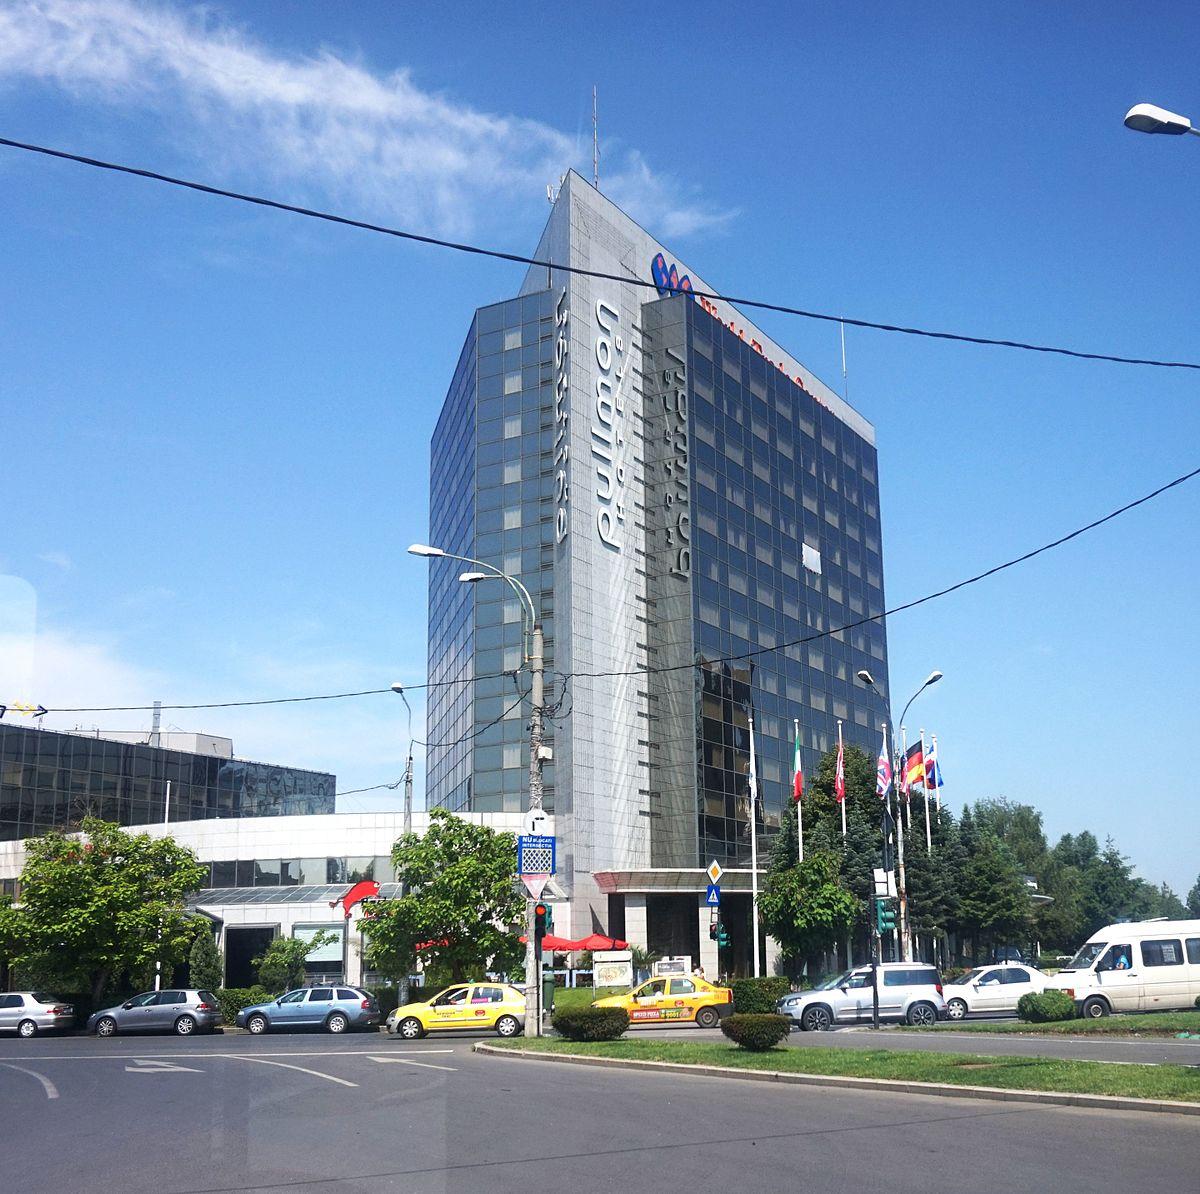 Hotel Pullman Bucharest World Trade Center Wikipedia